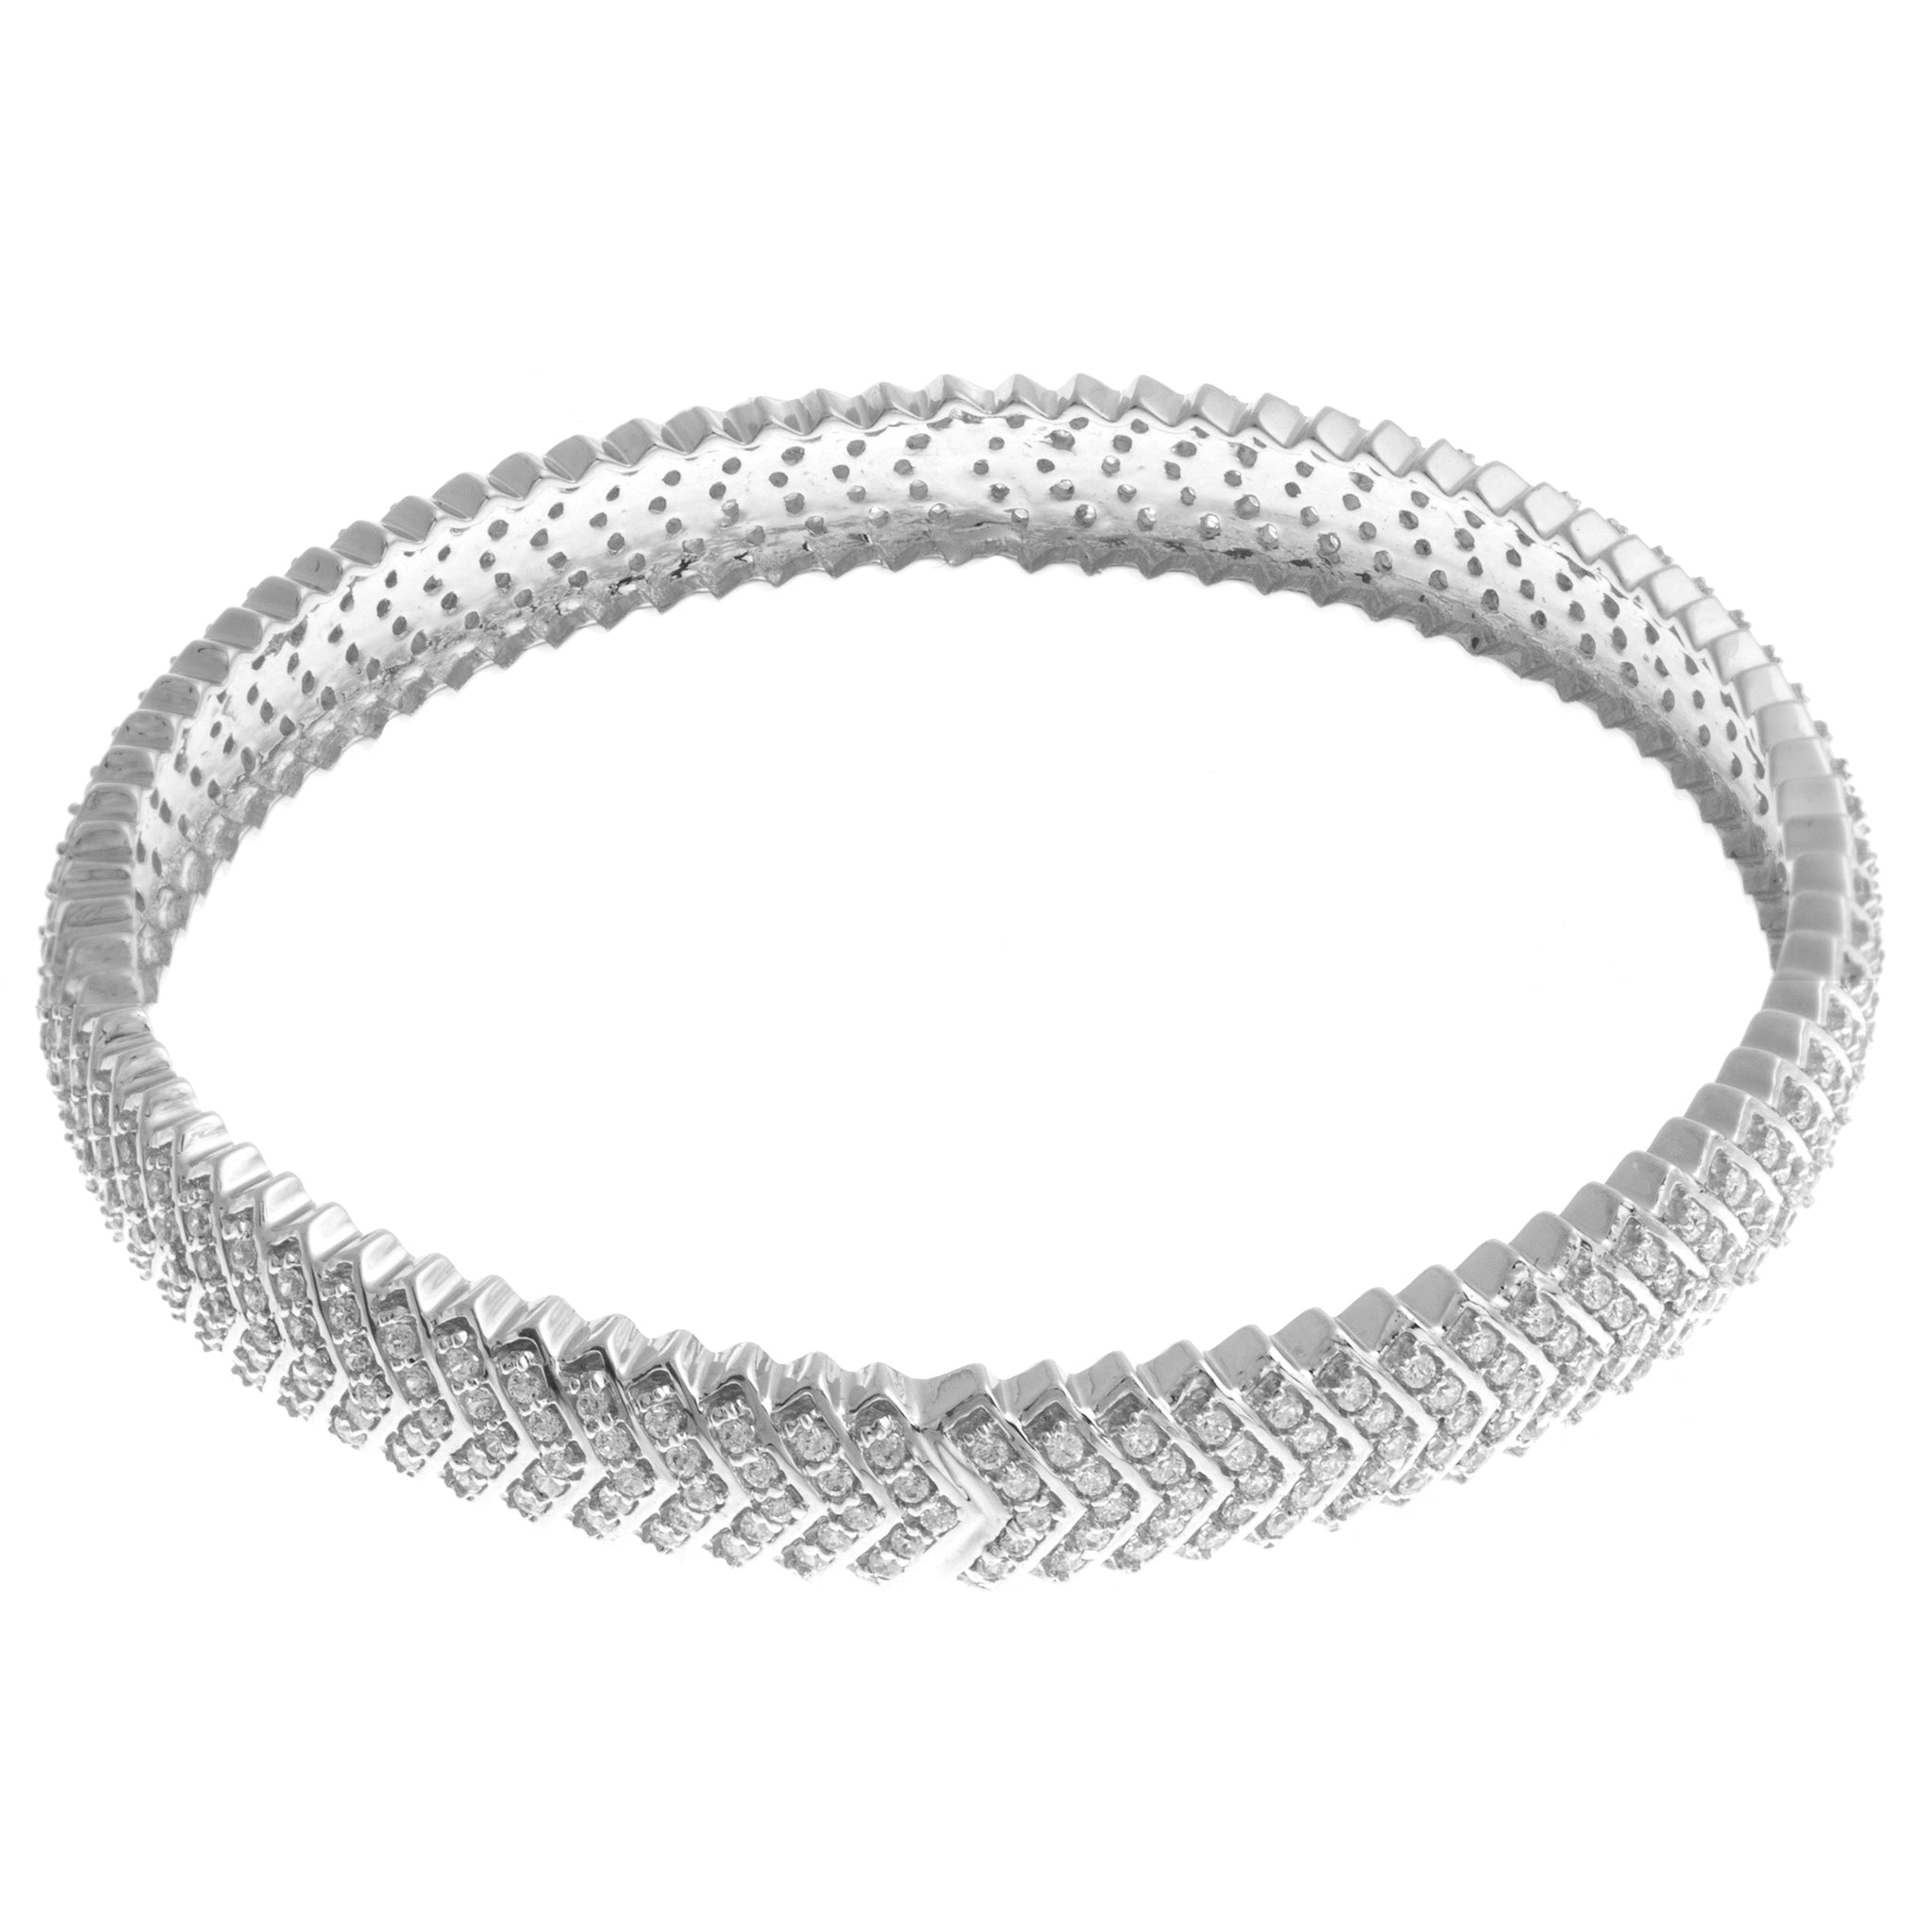 18ct White Gold Bangle with Cubic Zirconia Stones (28.9g) (B-1472)